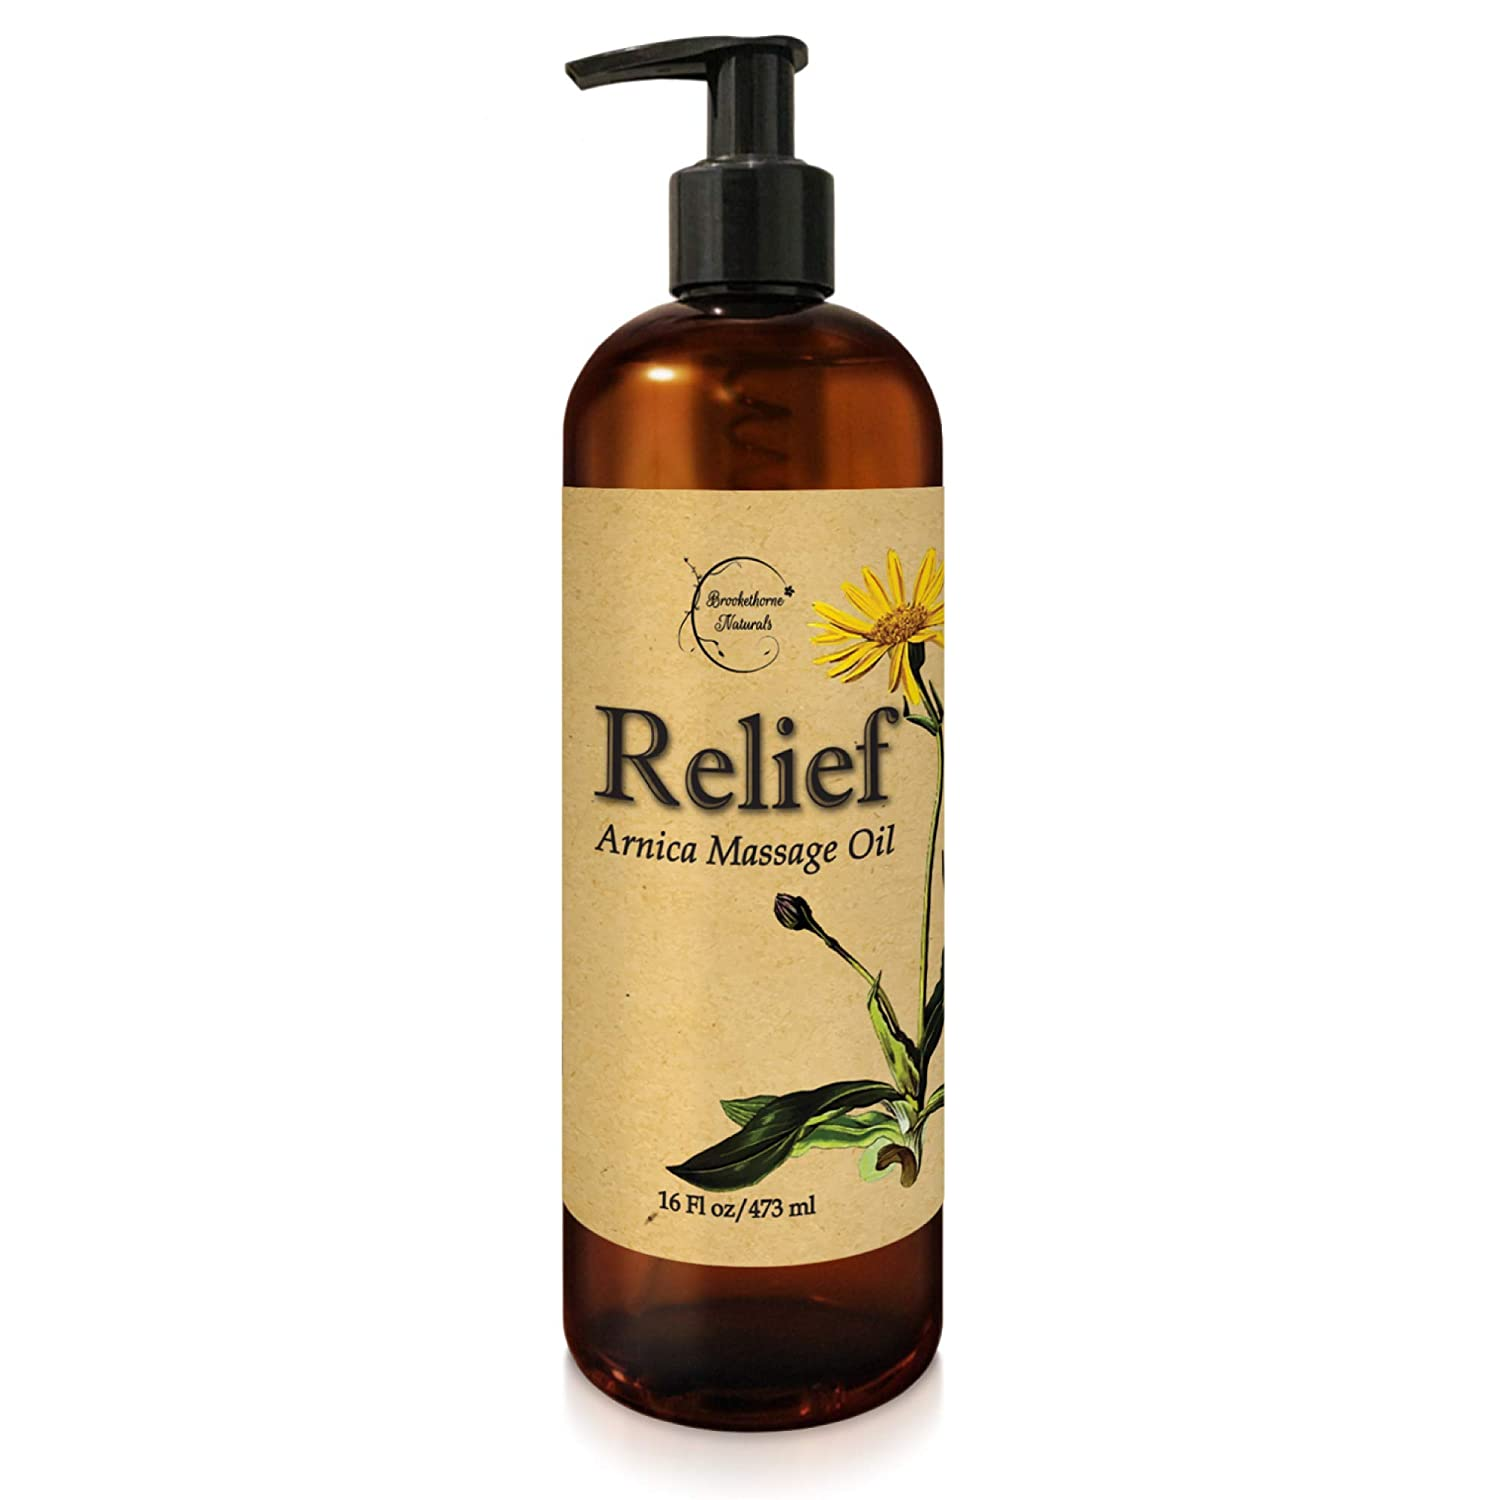 Relief Arnica Massage Oil for Massage Therapy & Home Use Therapeutic Massaging Oil Great for Lymphatic Drainage, Sore Muscles & Natural Joint Pain Relief with Arnica Montana & Lemongrass Essential Oil